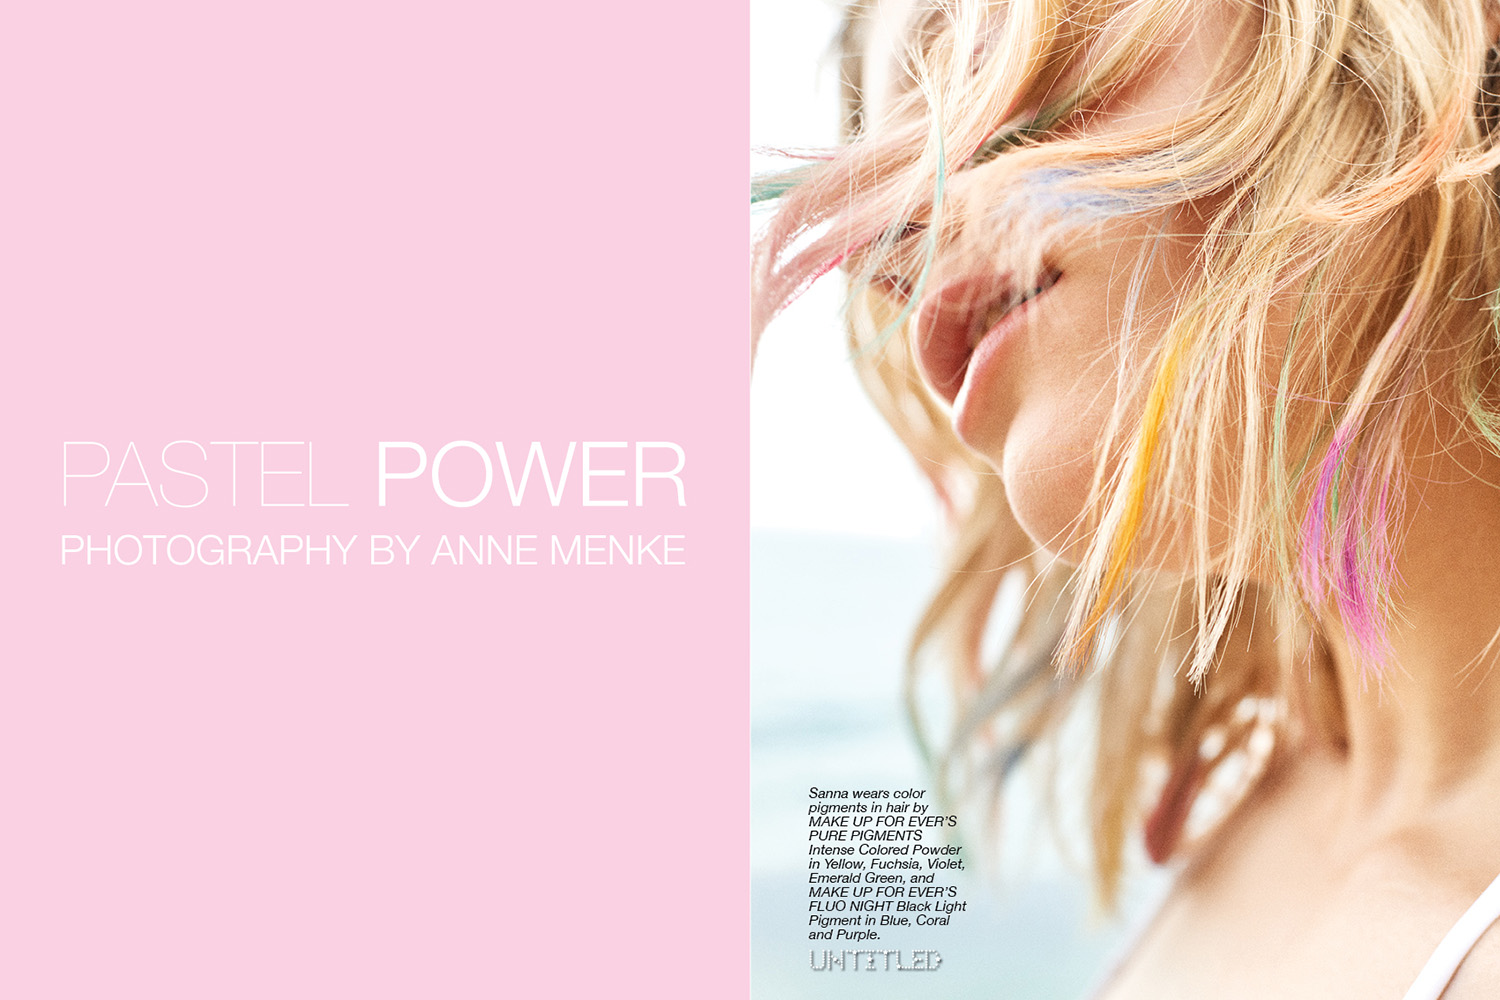 Pastel Power - The Untitled Magazine - Photography Anne Menke